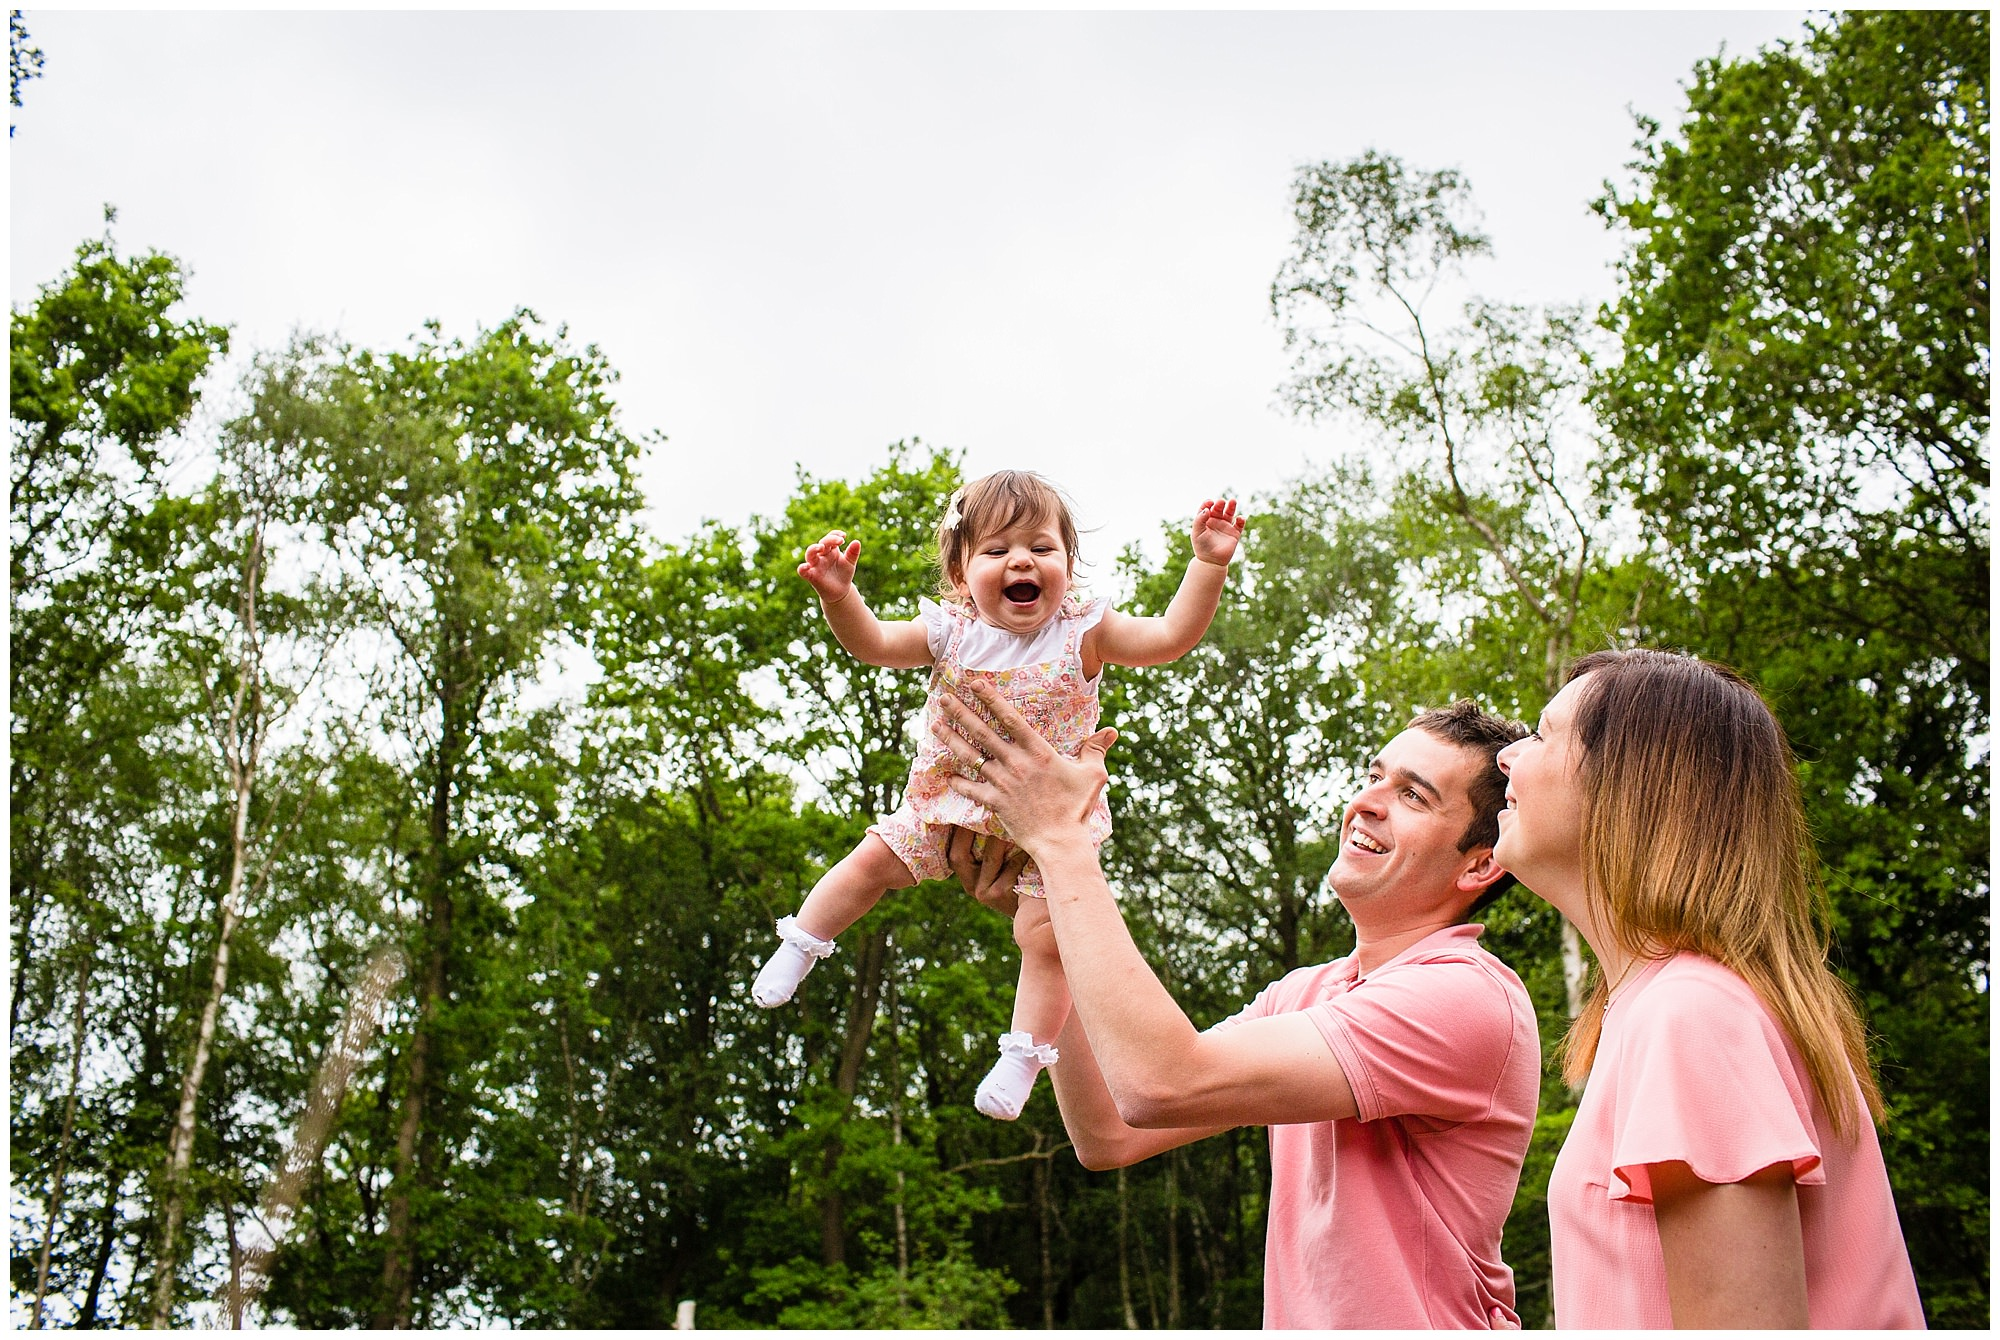 daddy throwing baby up into the air finding it hilarious - shropshire family photographer